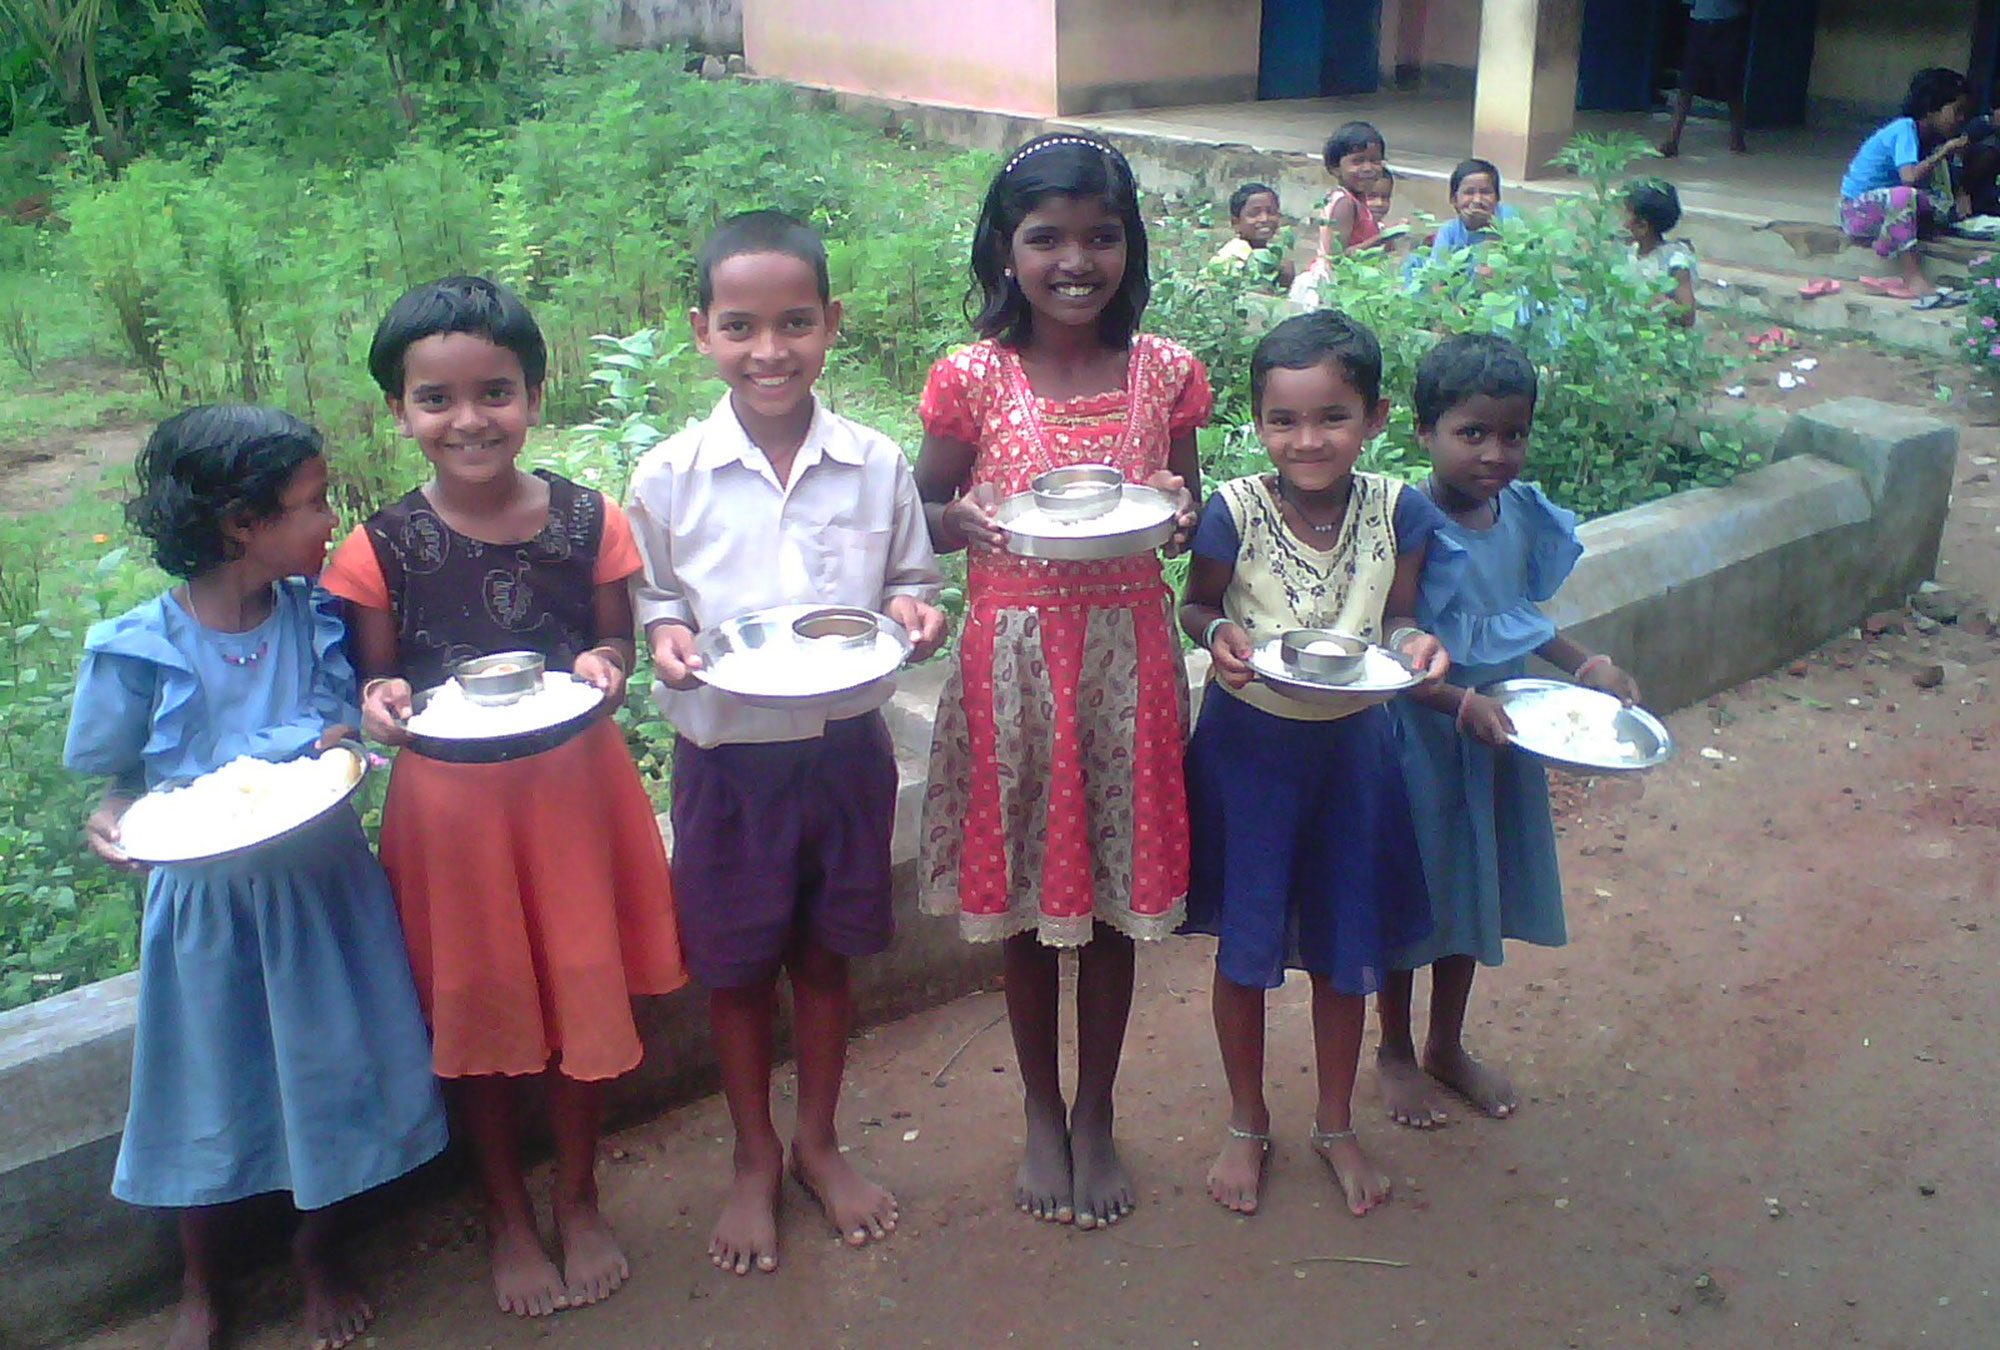 Schoolchildren in Orissa, India pose with their mid-day meals.